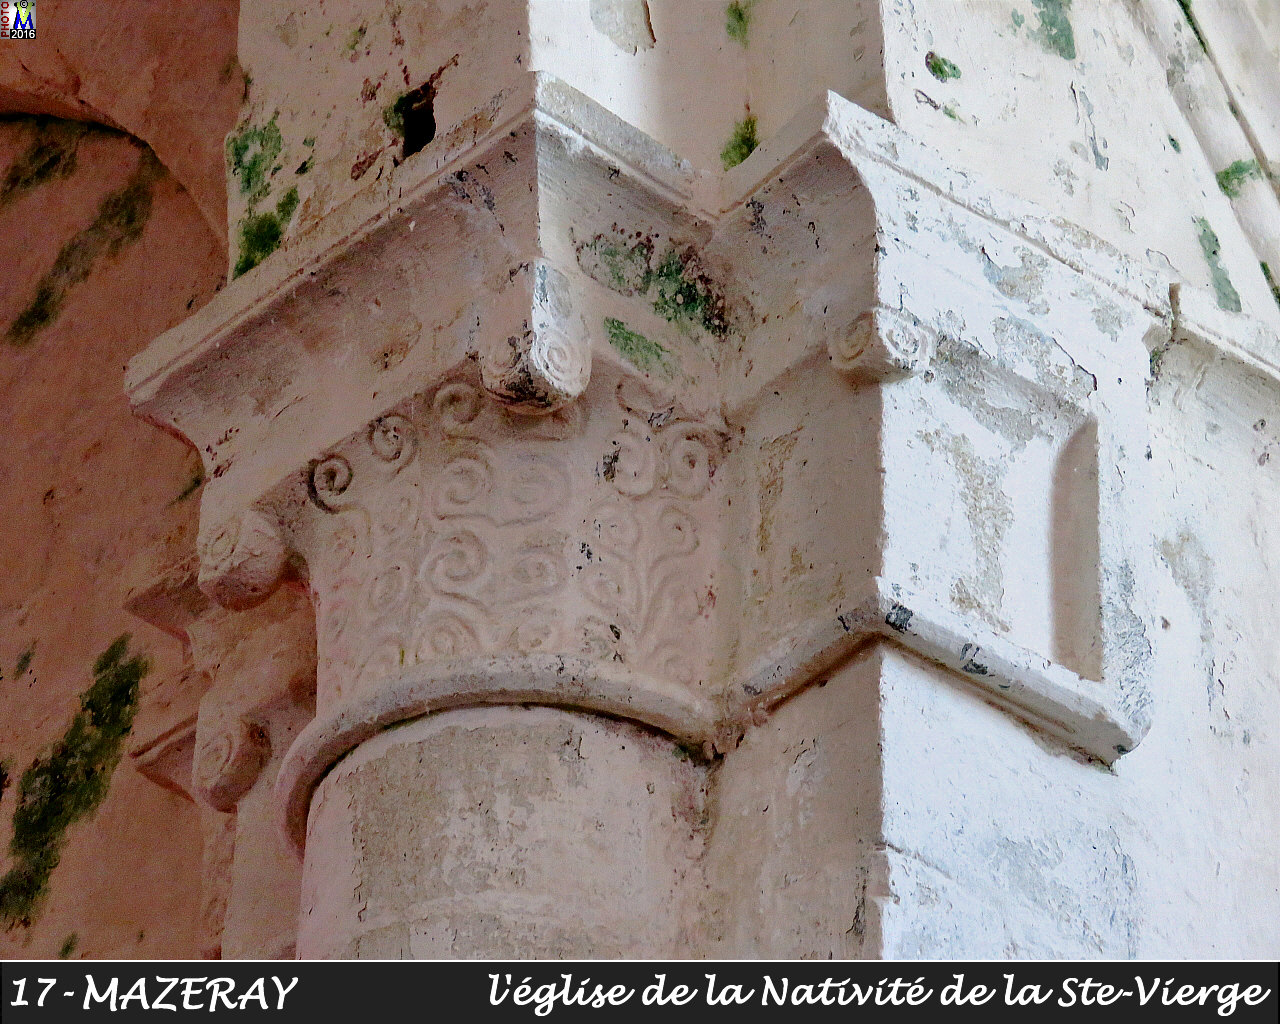 17MAZERAY_eglise_1108.jpg